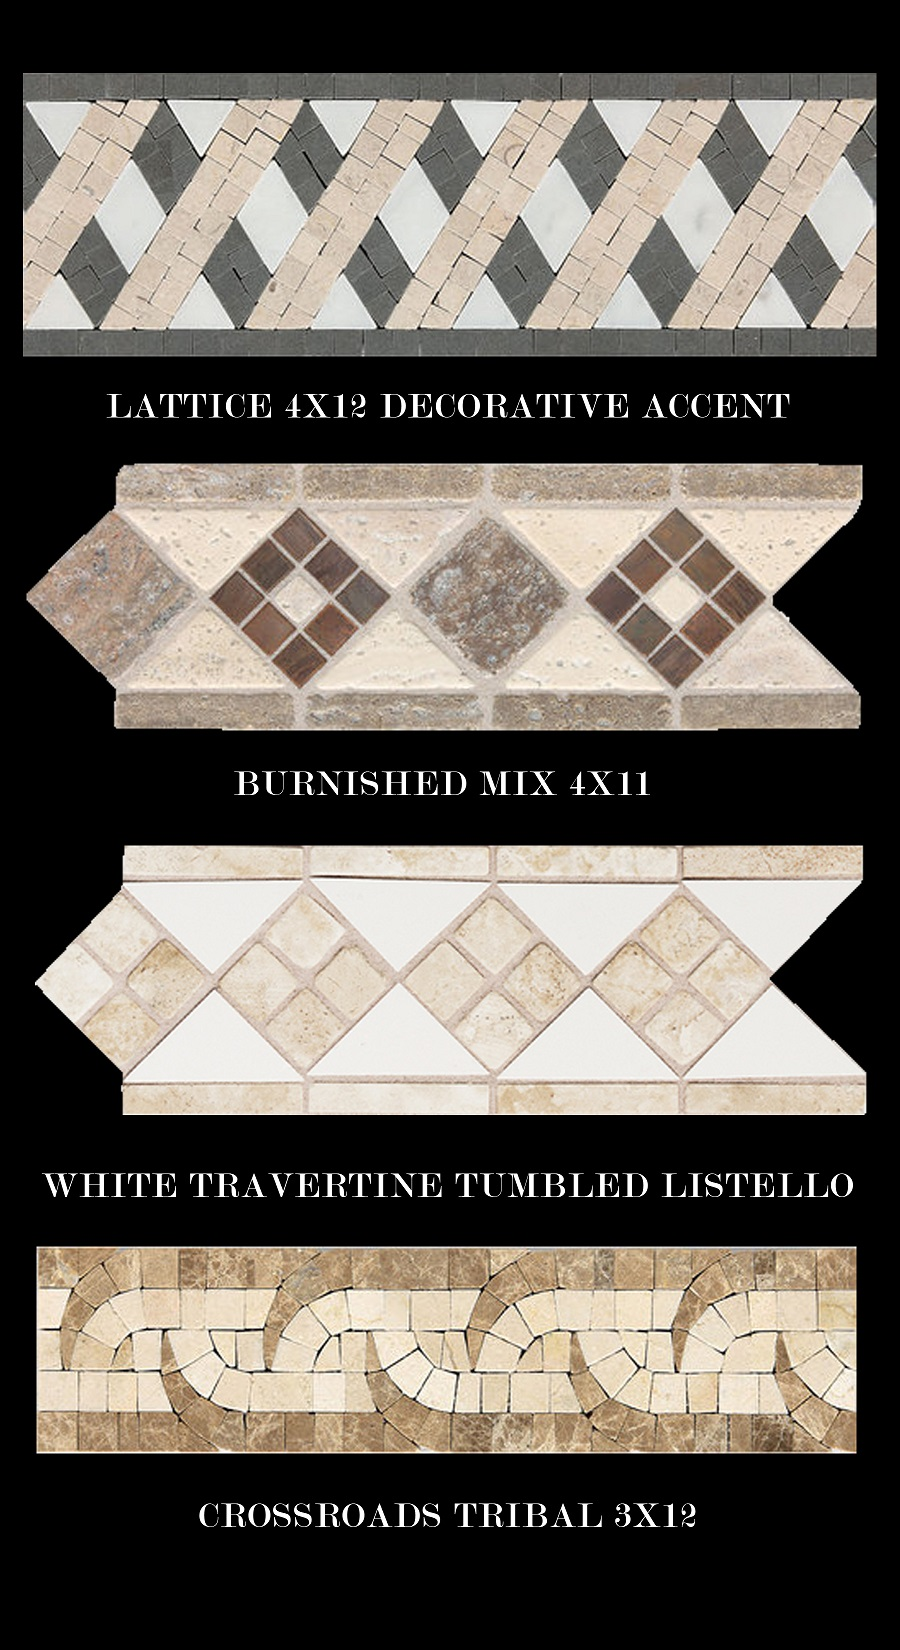 Stone combinations Daltile Fashion accents decorative border strip Lattice Burnished mix white travertine tumbled listello crossroads tribal pattern copper walnut grey white